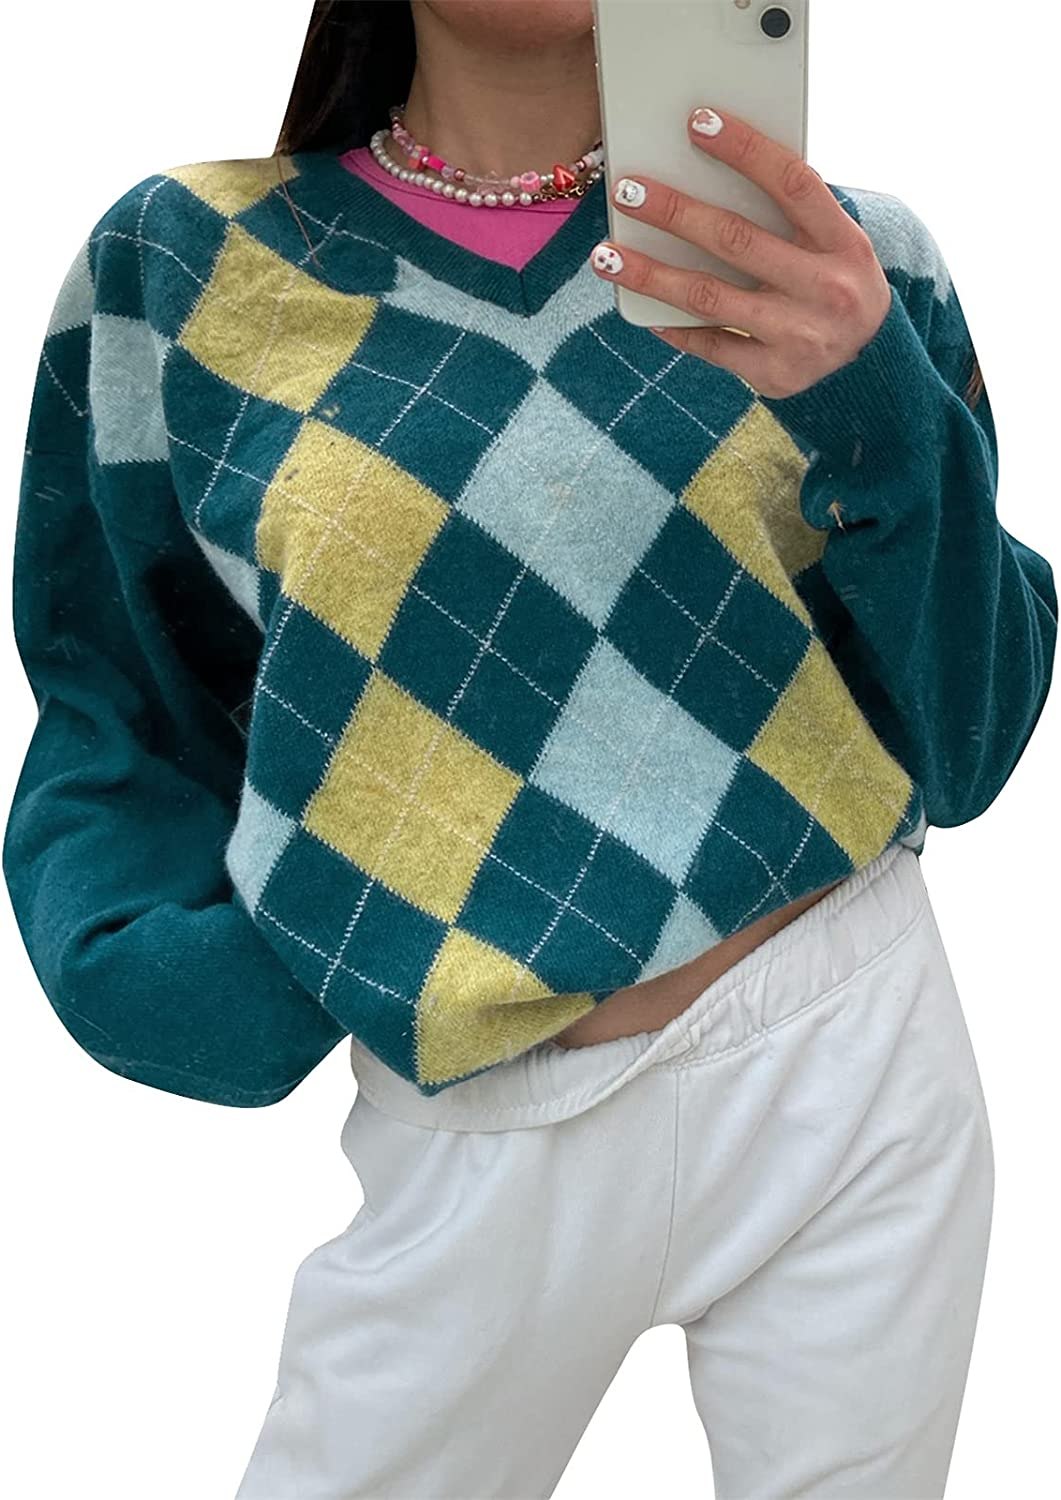 Women Argyle Plaid Sweater Pullover Long Sleeve Preppy England Style Y2K E-Girl Autumn Winter Sweater Top